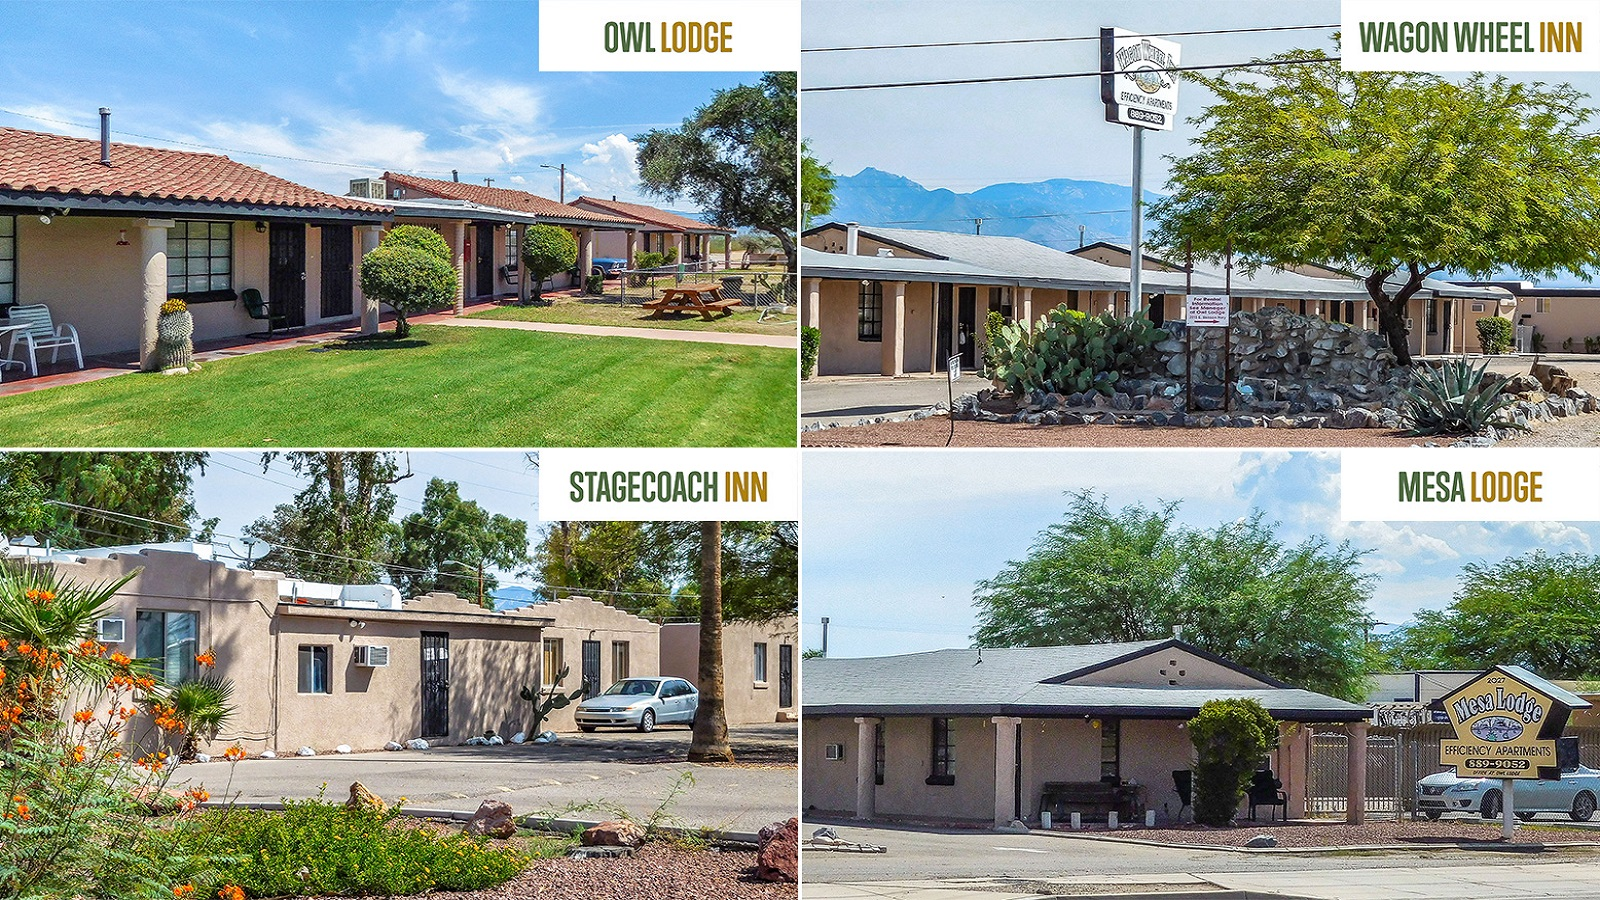 Tucson 55 Portfolio | 1431, 1951, 2015 & 2027 East Benson Hwy, Tucson, AZ 85714 | 55 Units | Built in 1948 and 1976 | $1,347,500 | $24,500 Per Unit | $46.07 Per SF